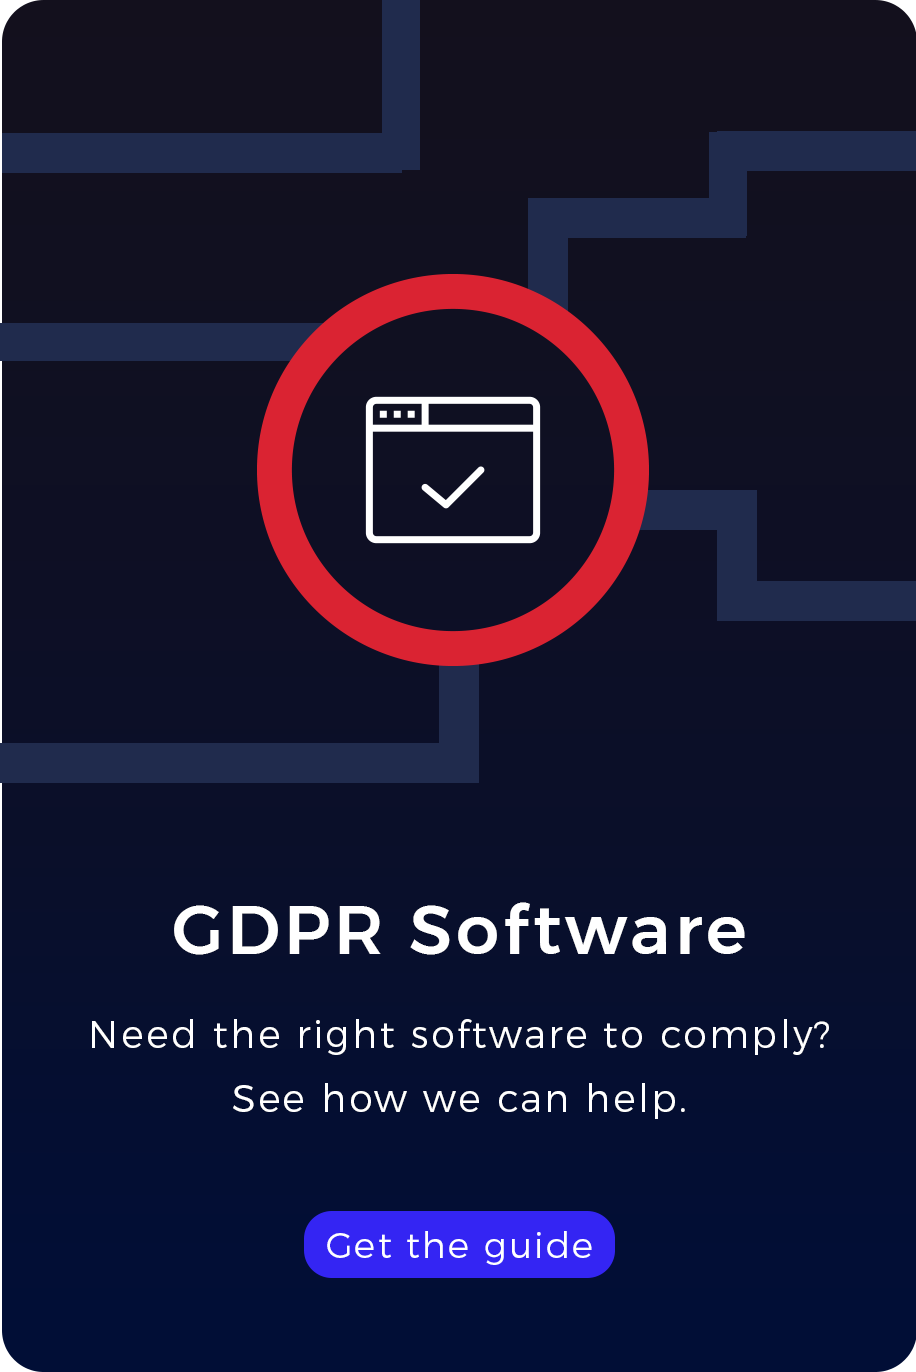 GDPR Software. Need the right software to comply? ebook cover